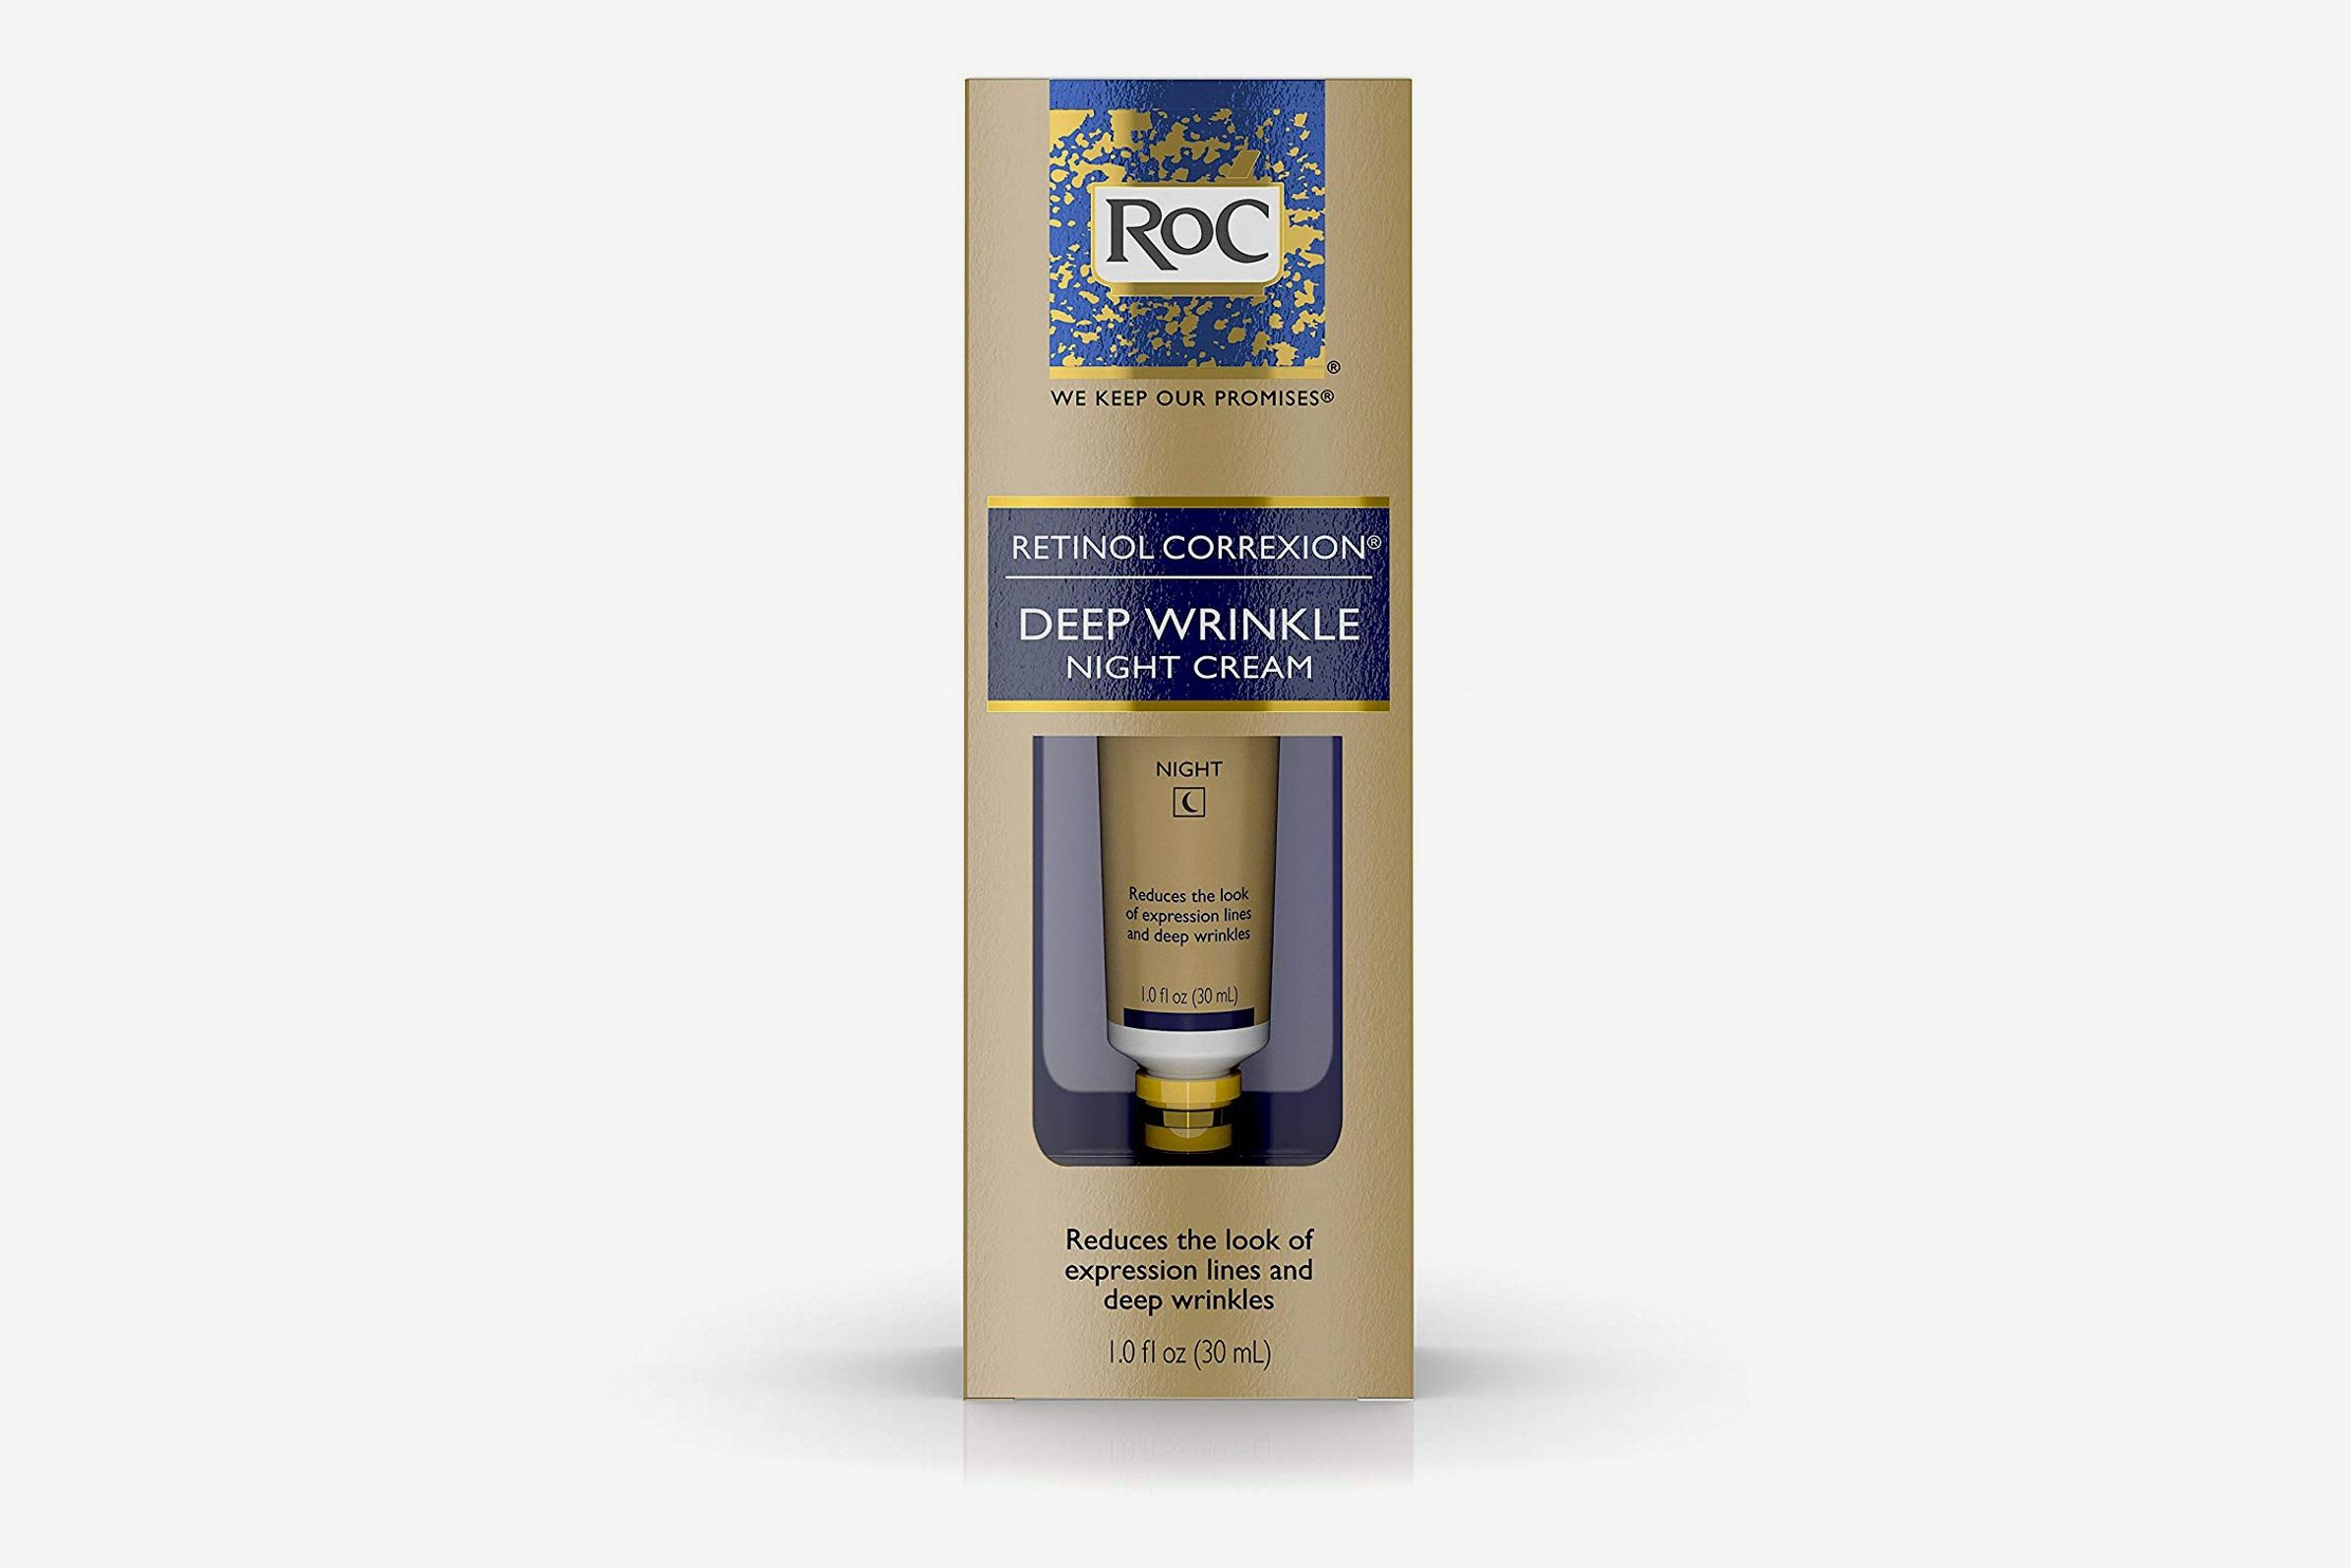 RoC Retinol Correction Deep Wrinkle Night Cream